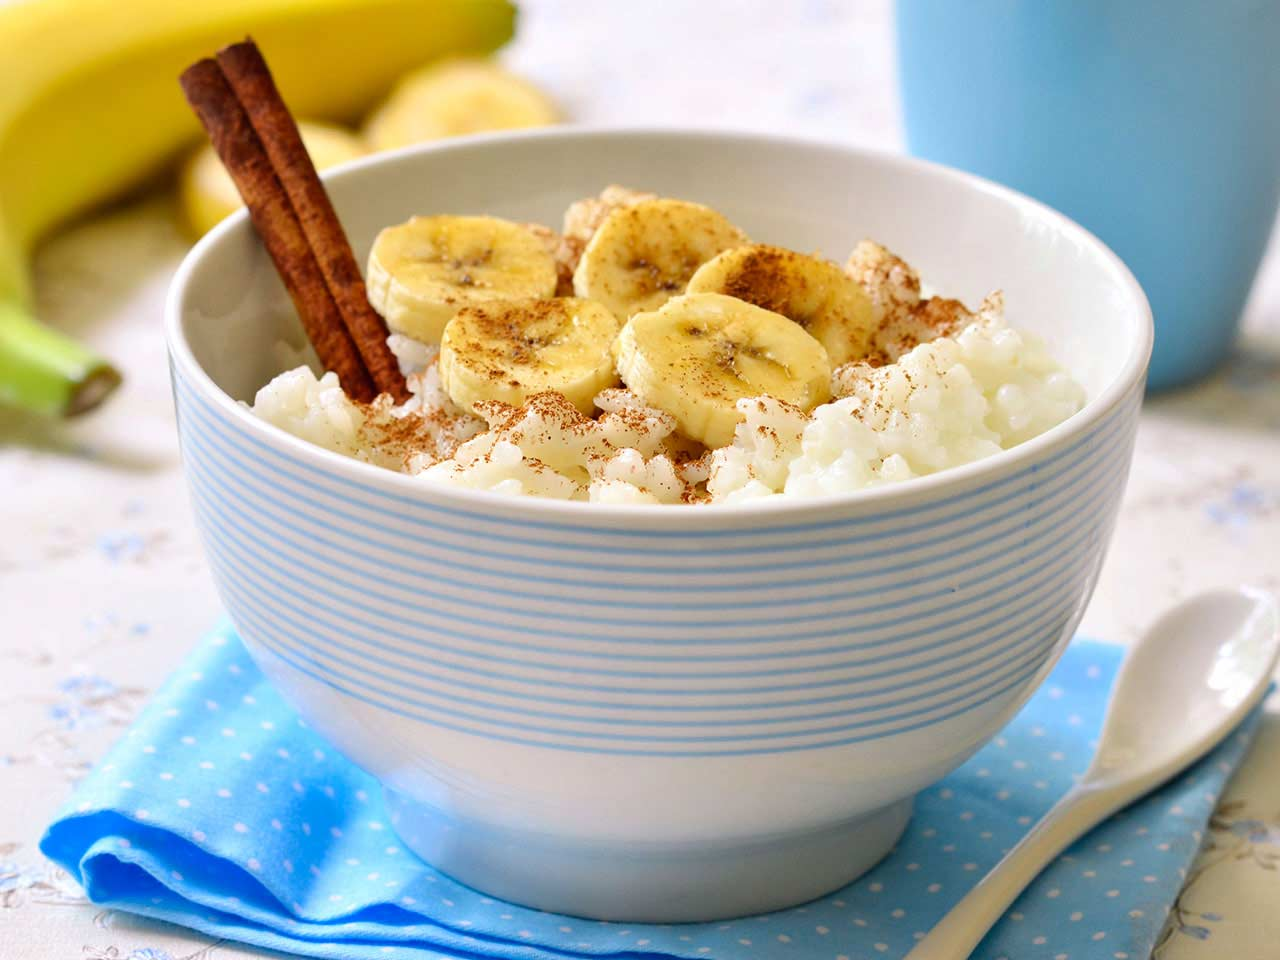 Bowl of porridge with banana and cinammon sticks